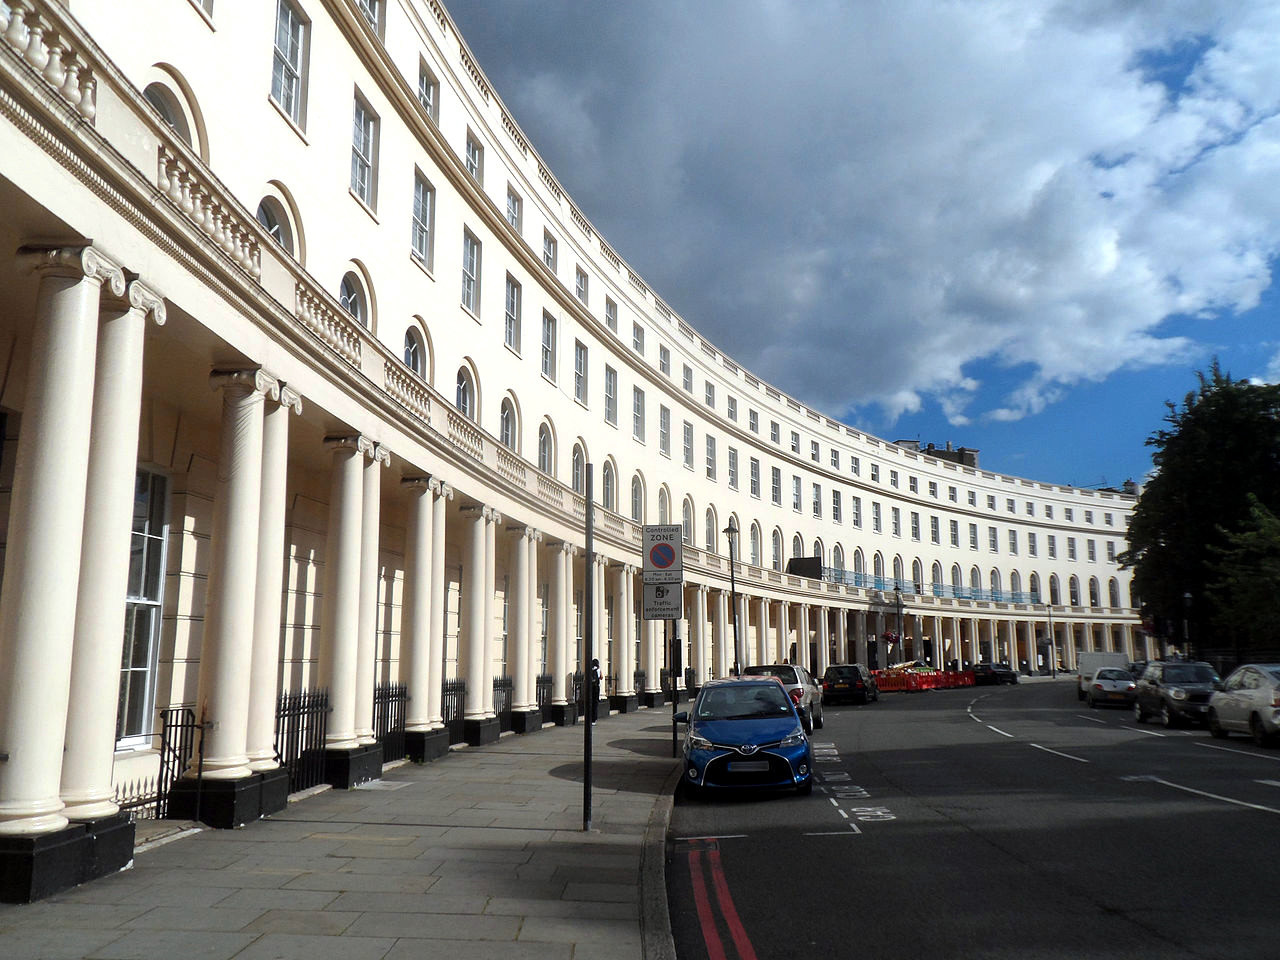 Park Crescent, London. Credit spudgun67